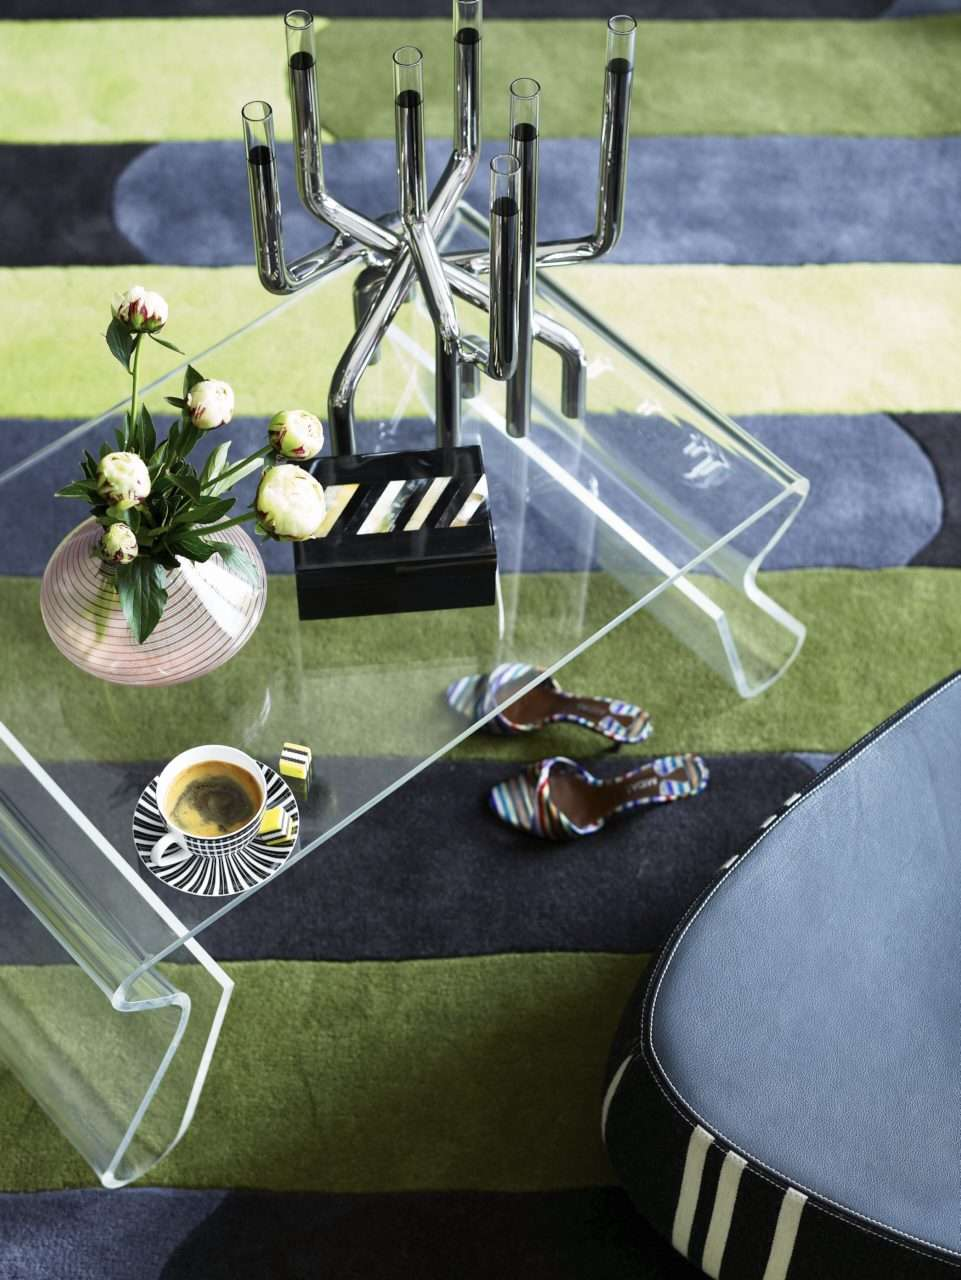 CIN-00028449 Striped Rug & Coffee Table-017